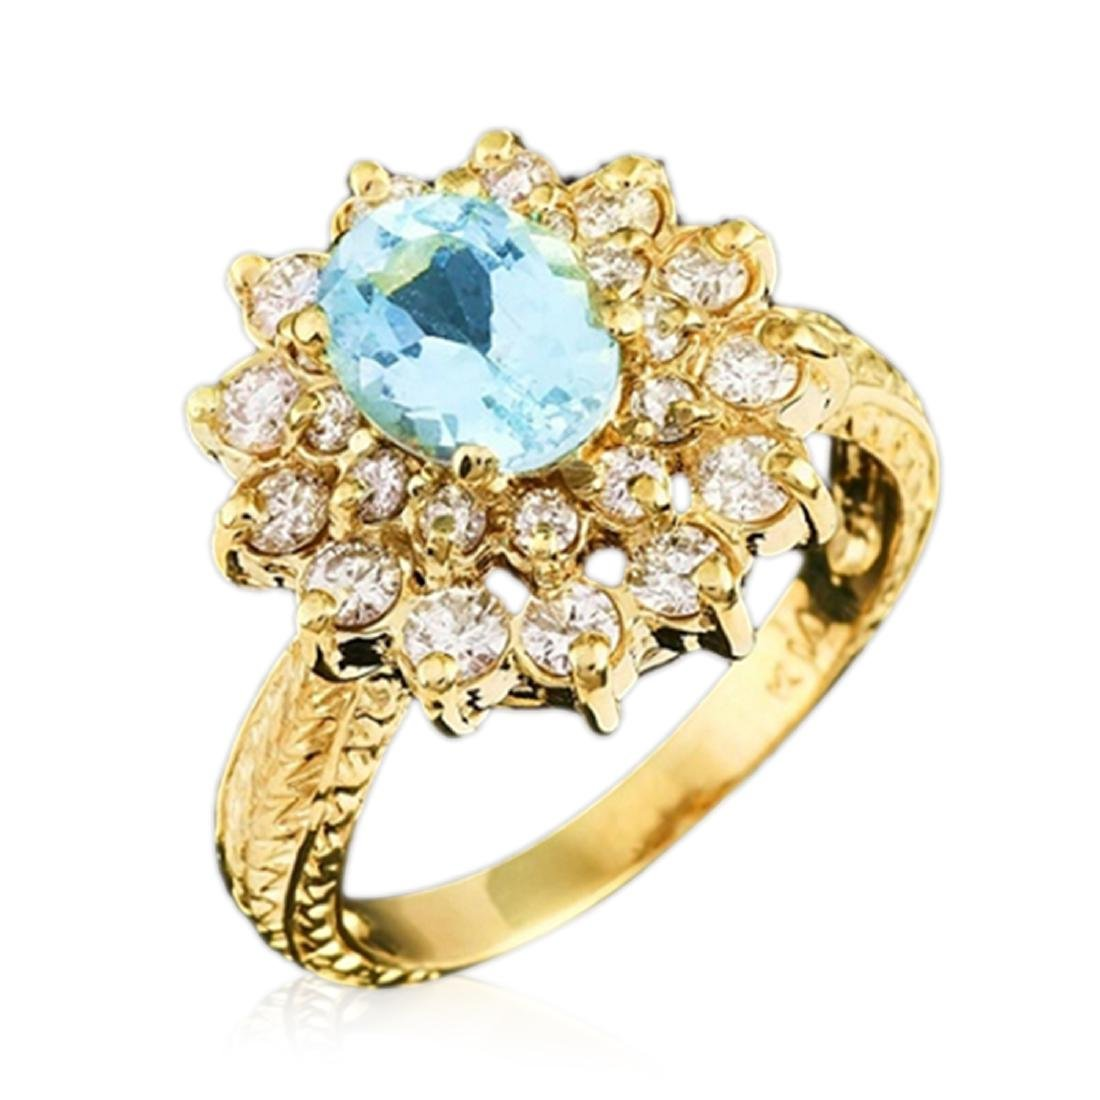 2.40 Carat Natural Aquamarine 18K Solid Yellow Gold